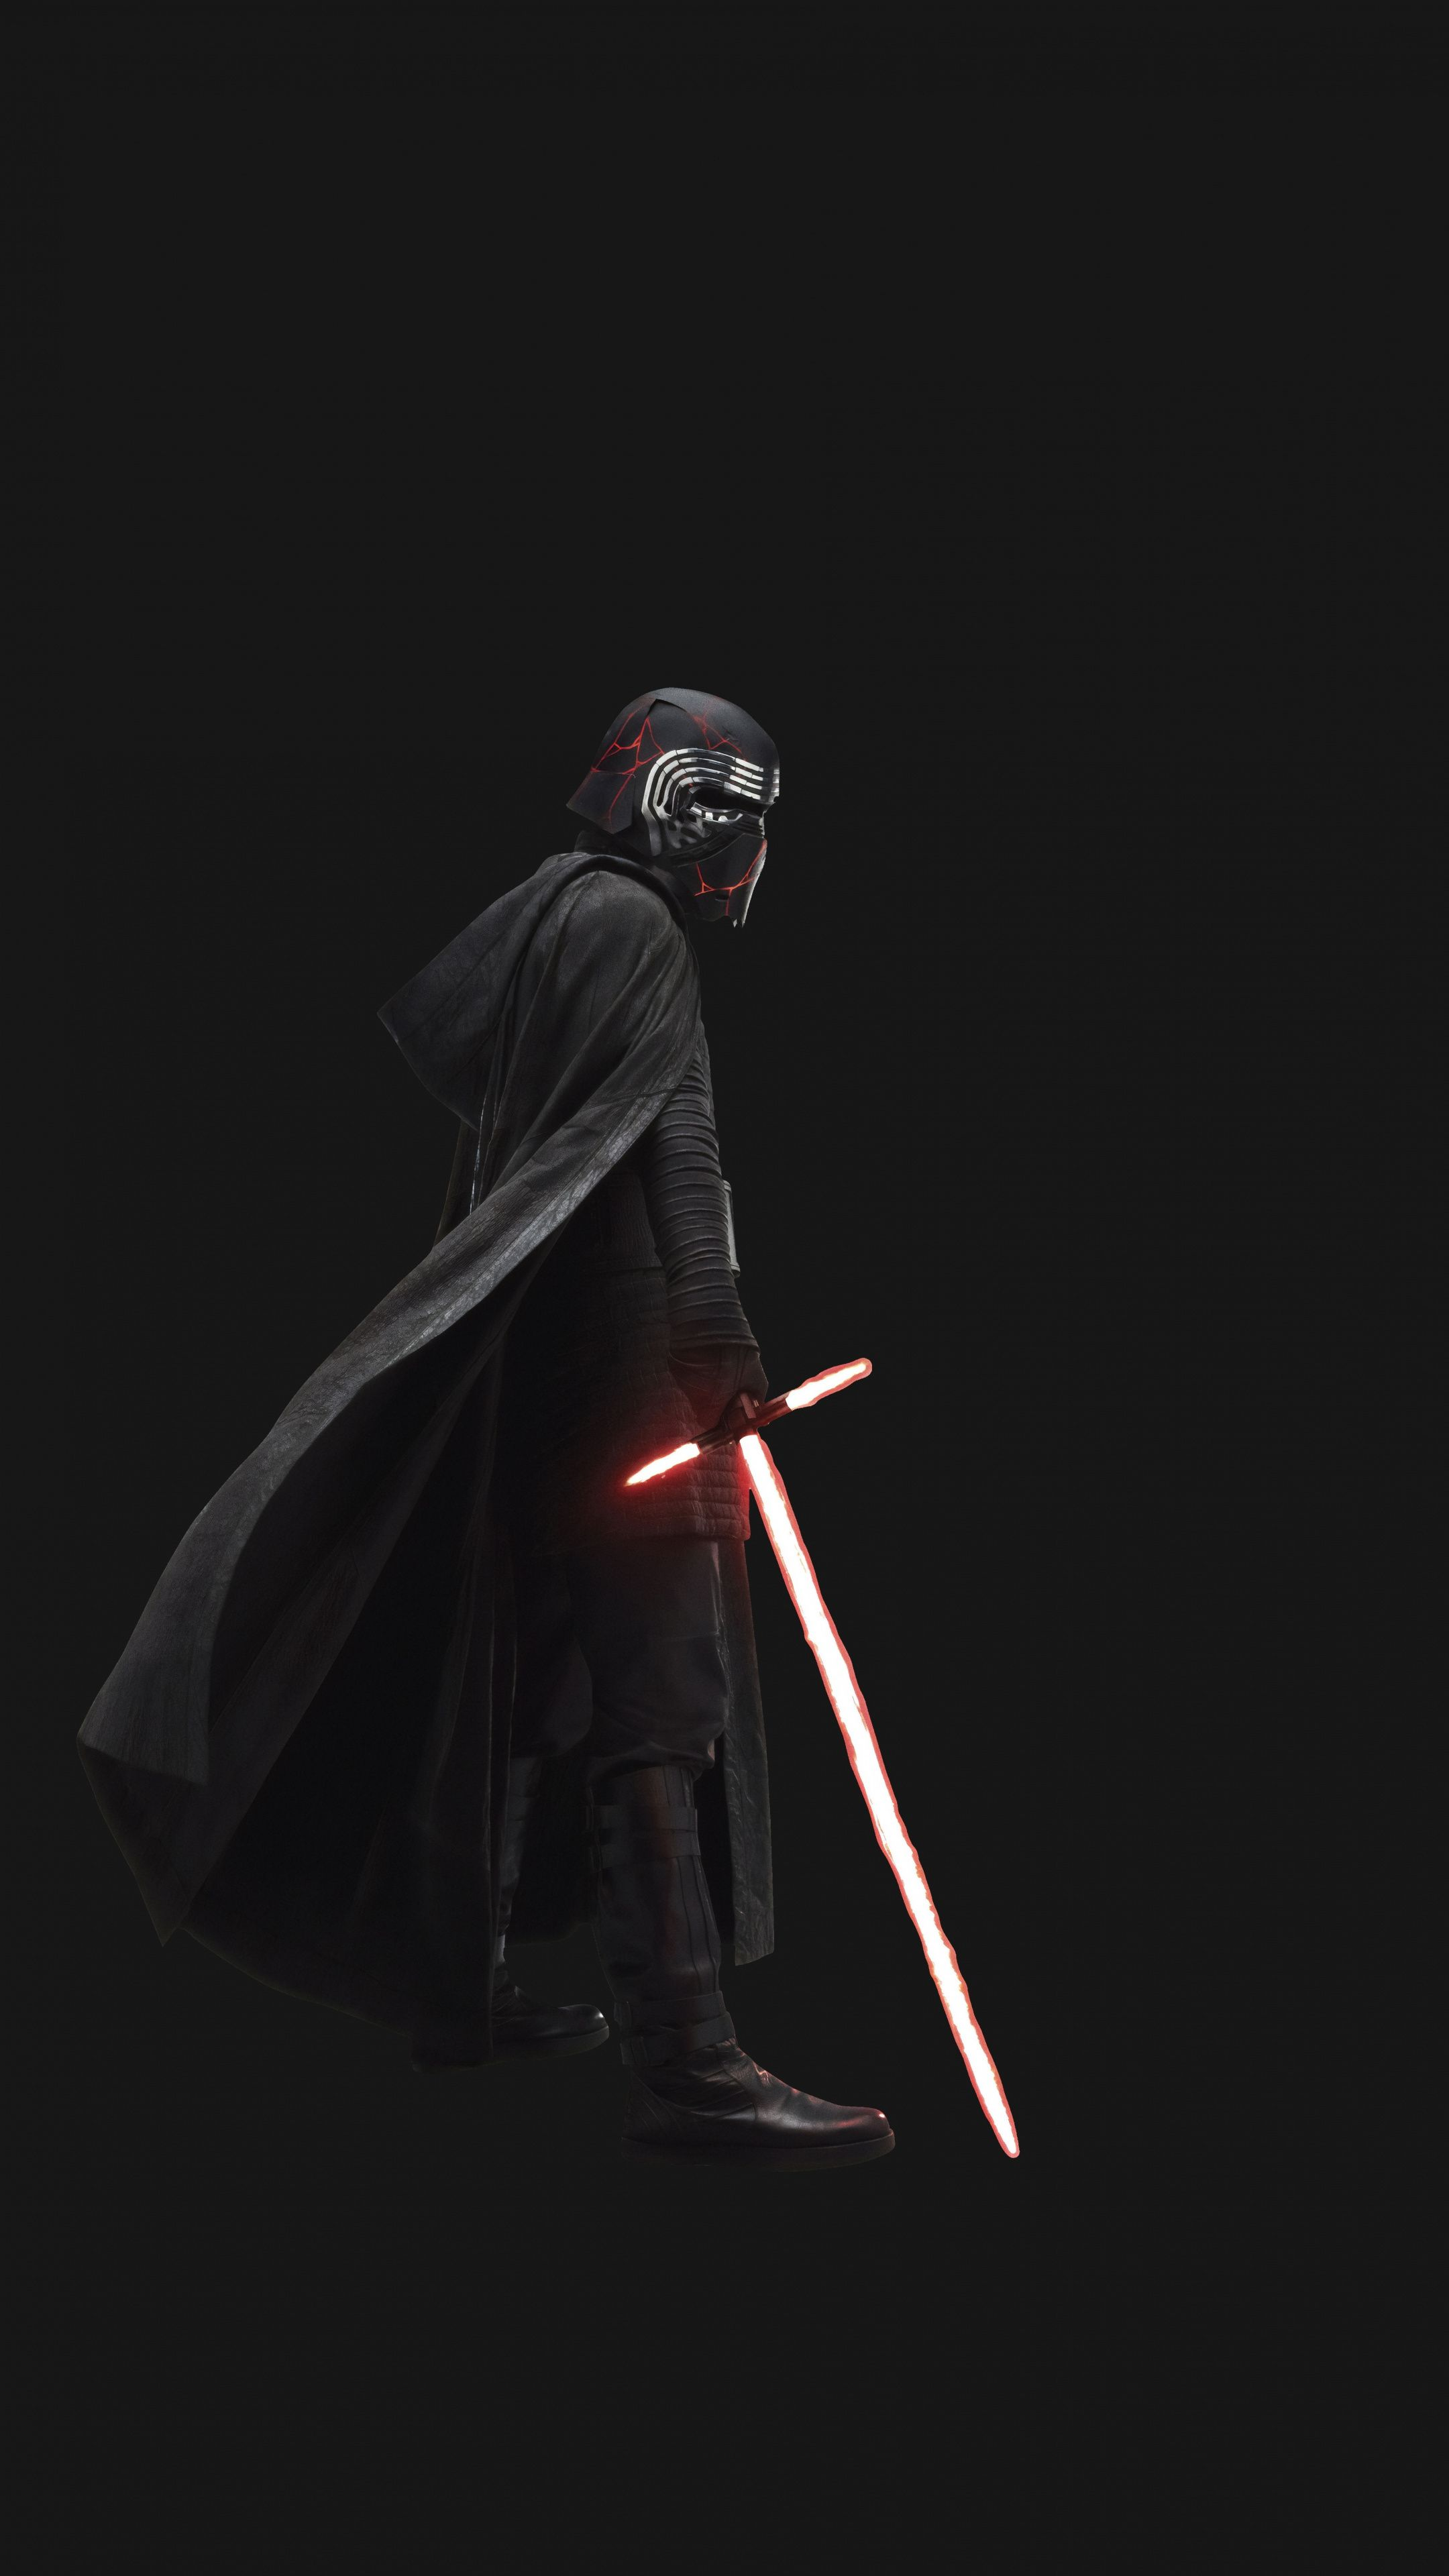 2160x3840 Star Wars The Rise Of Skywalker Villain Kylo Ren Wallpaper Star Wars Background Ren Star Wars Star Wars Pictures